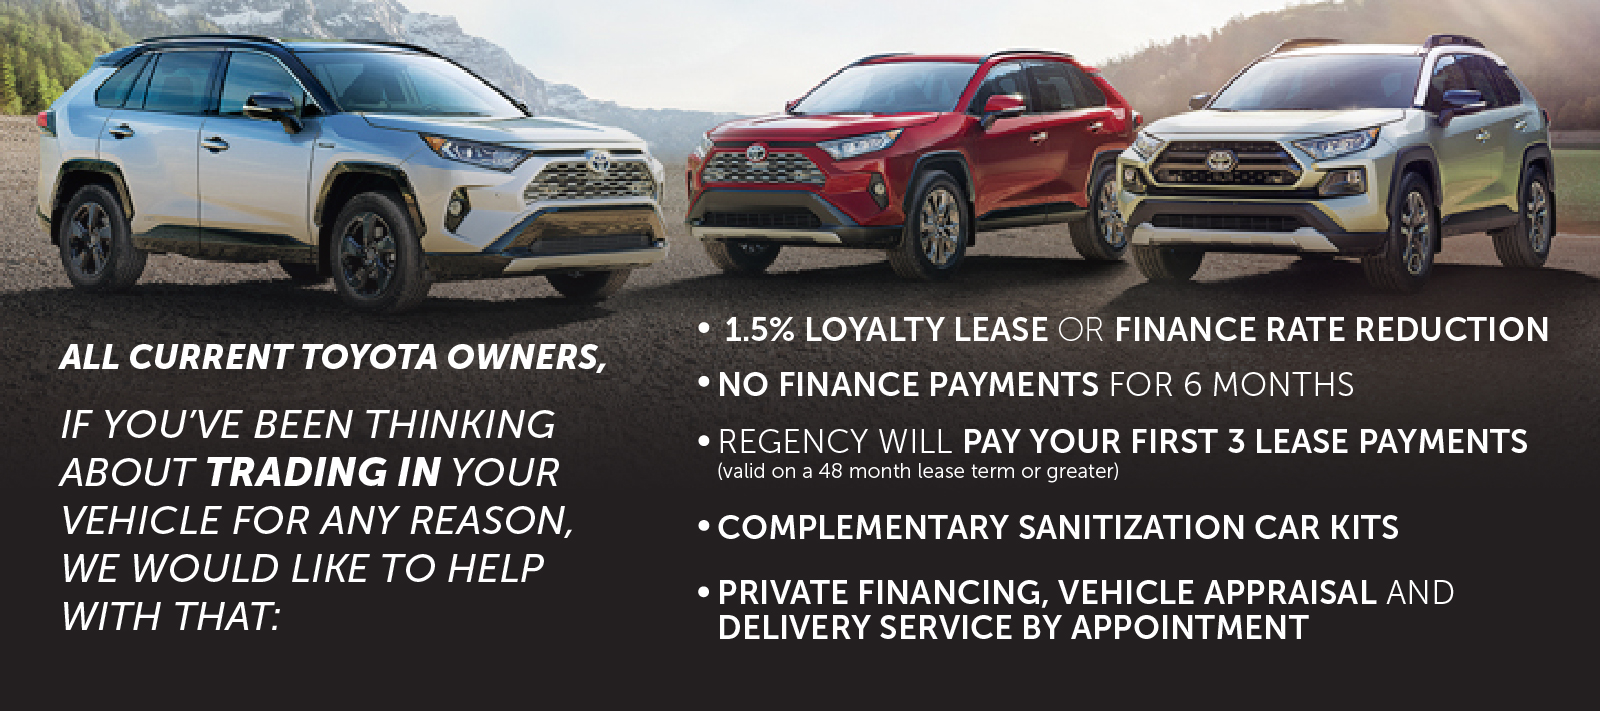 Toyota Banner Loyalty Offer 01